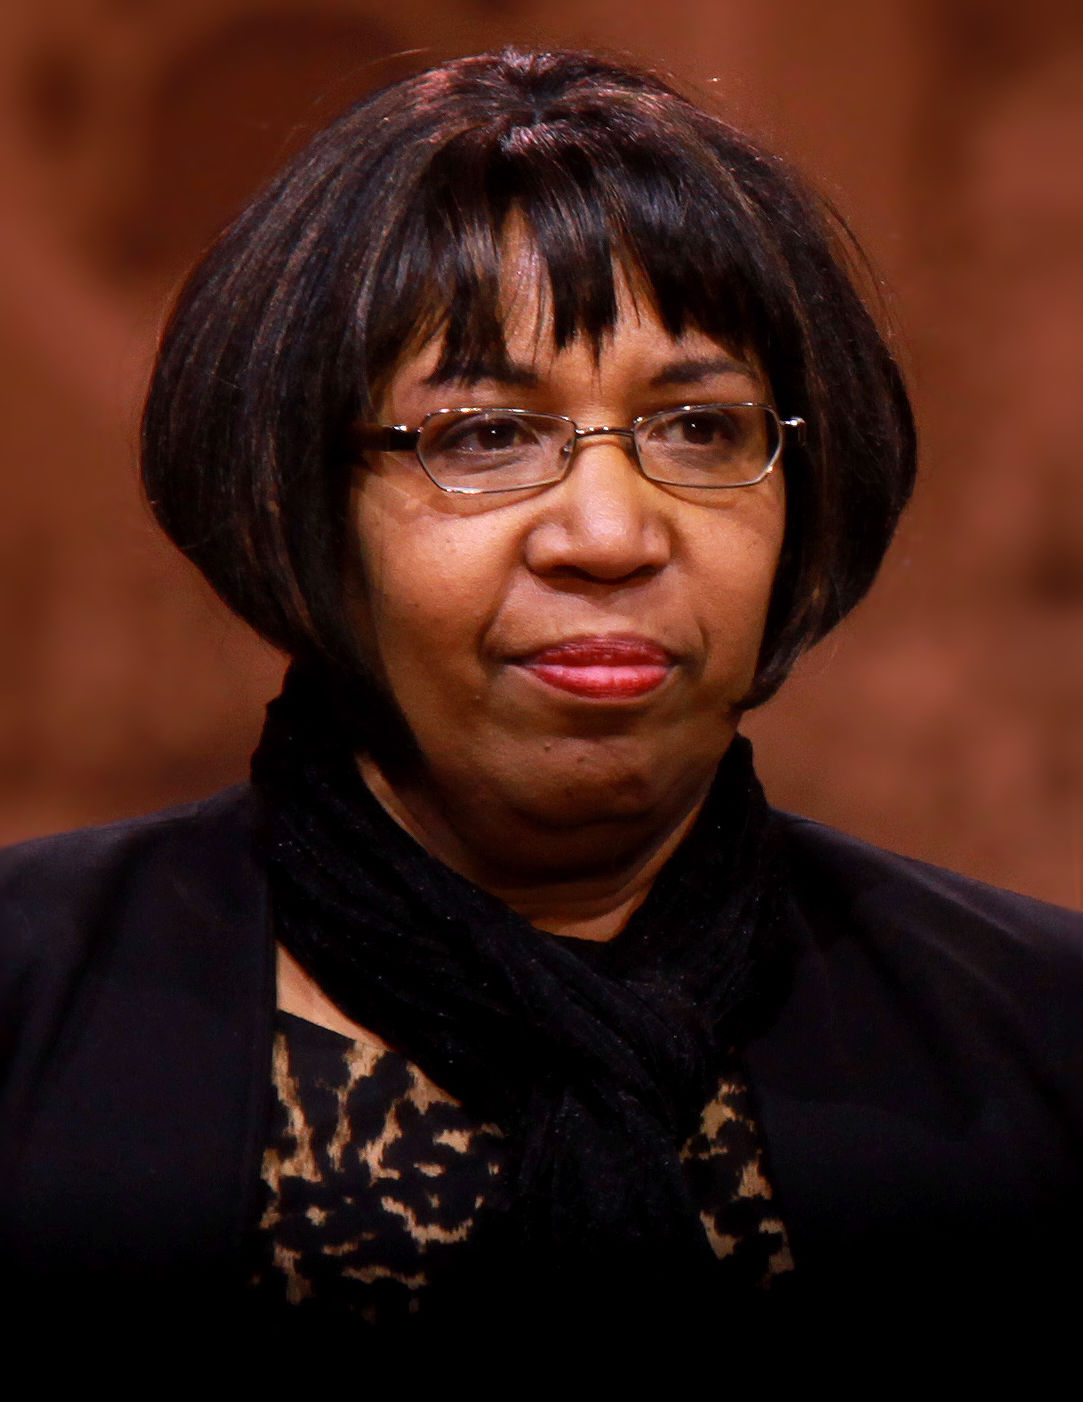 Candy carson wikipedia for The carson